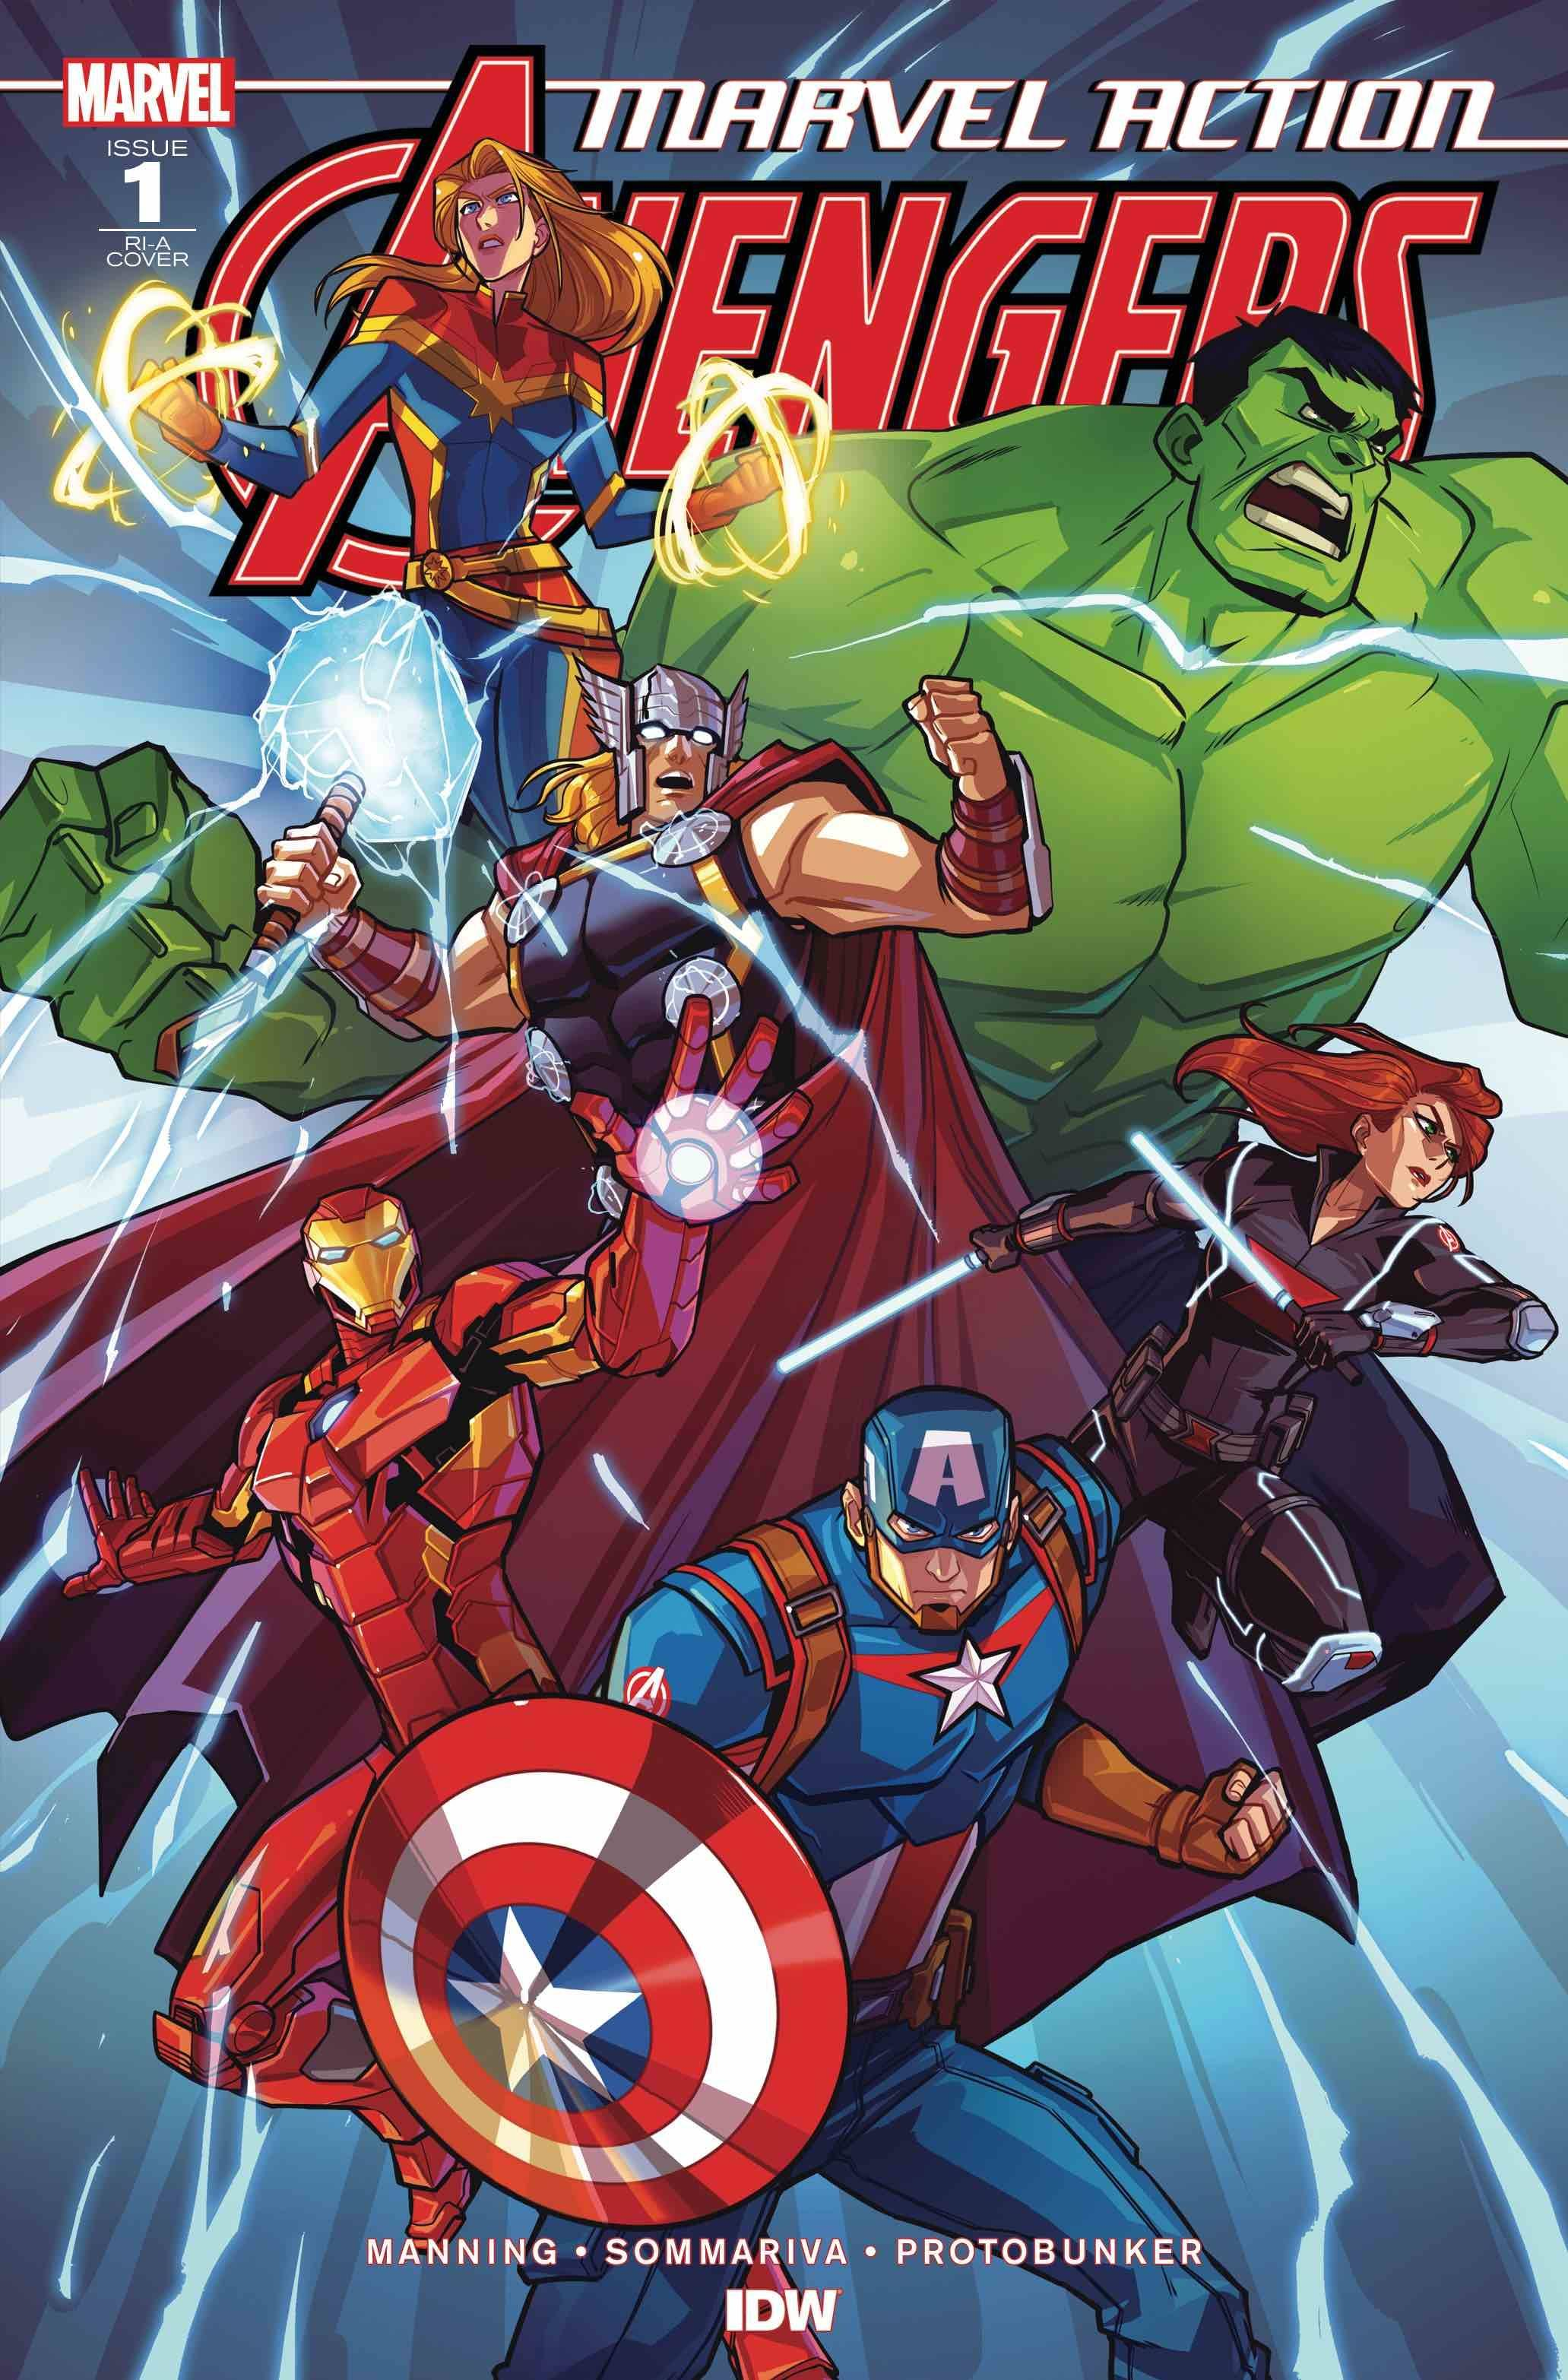 MARVEL ACTION AVENGERS (2020) #1 10 COPY INCV EDGAR